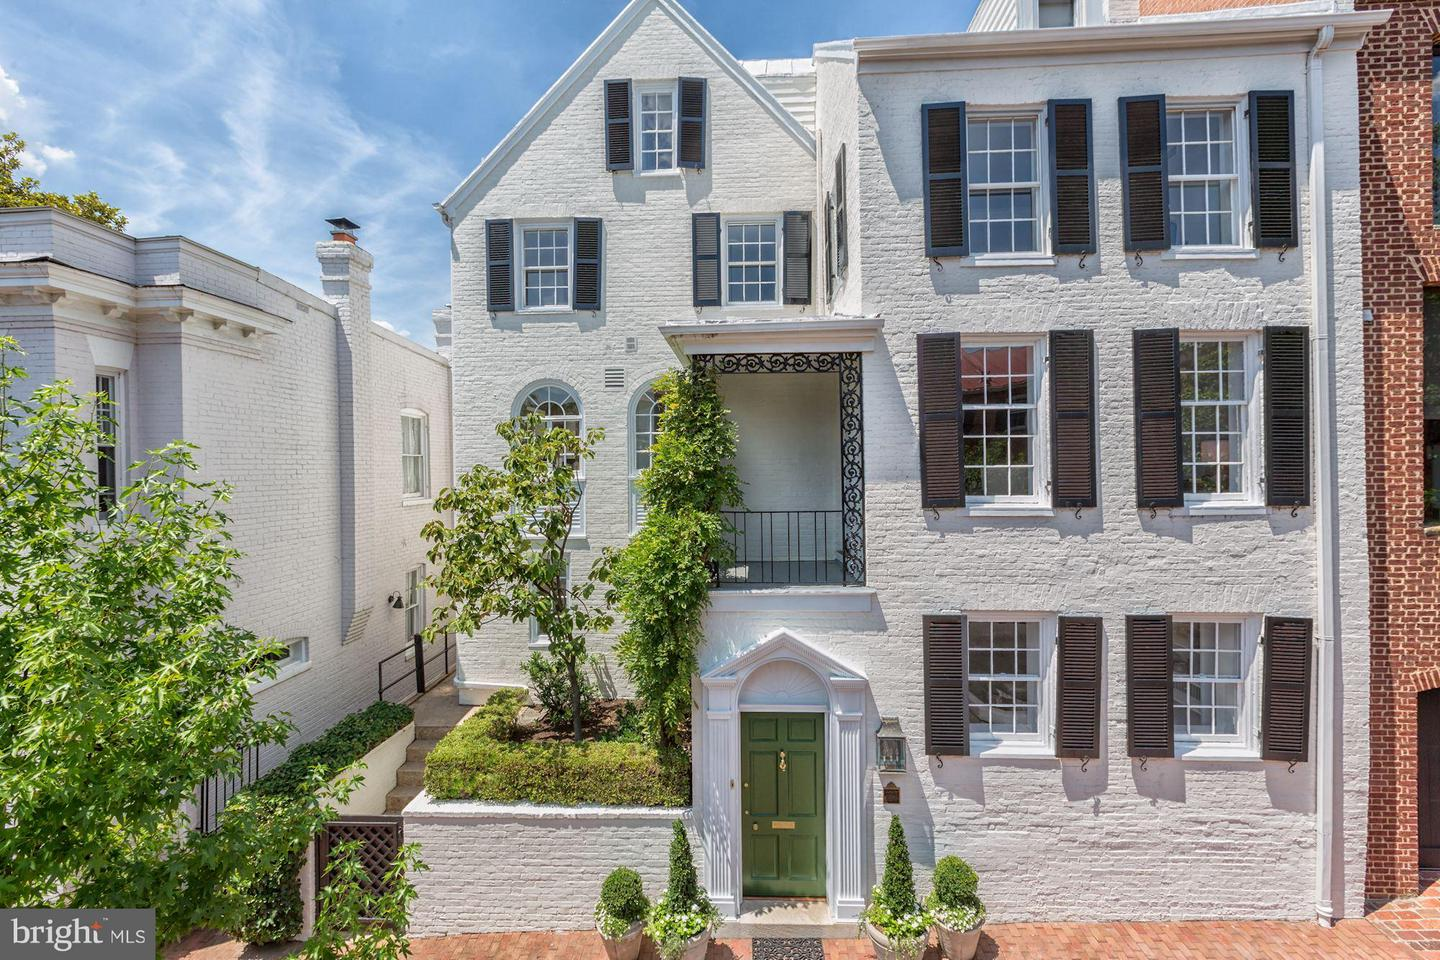 Single Family Home for Sale at 1314 28th St NW 1314 28th St NW Washington, District Of Columbia 20007 United States